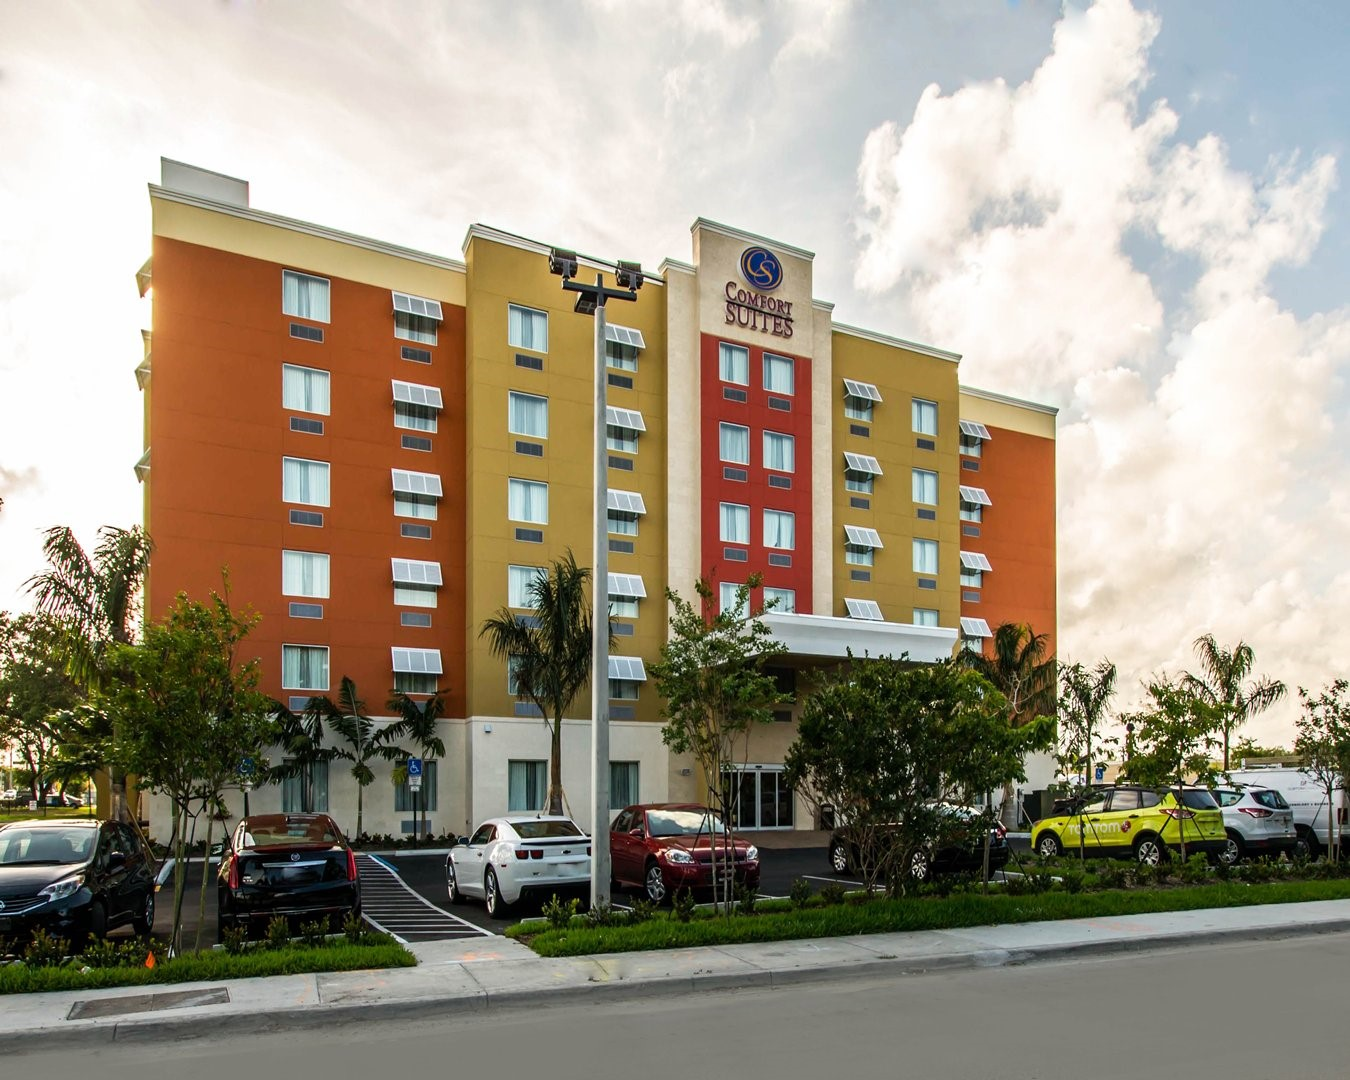 Hotels Civil Engineering Design Services In South Florida